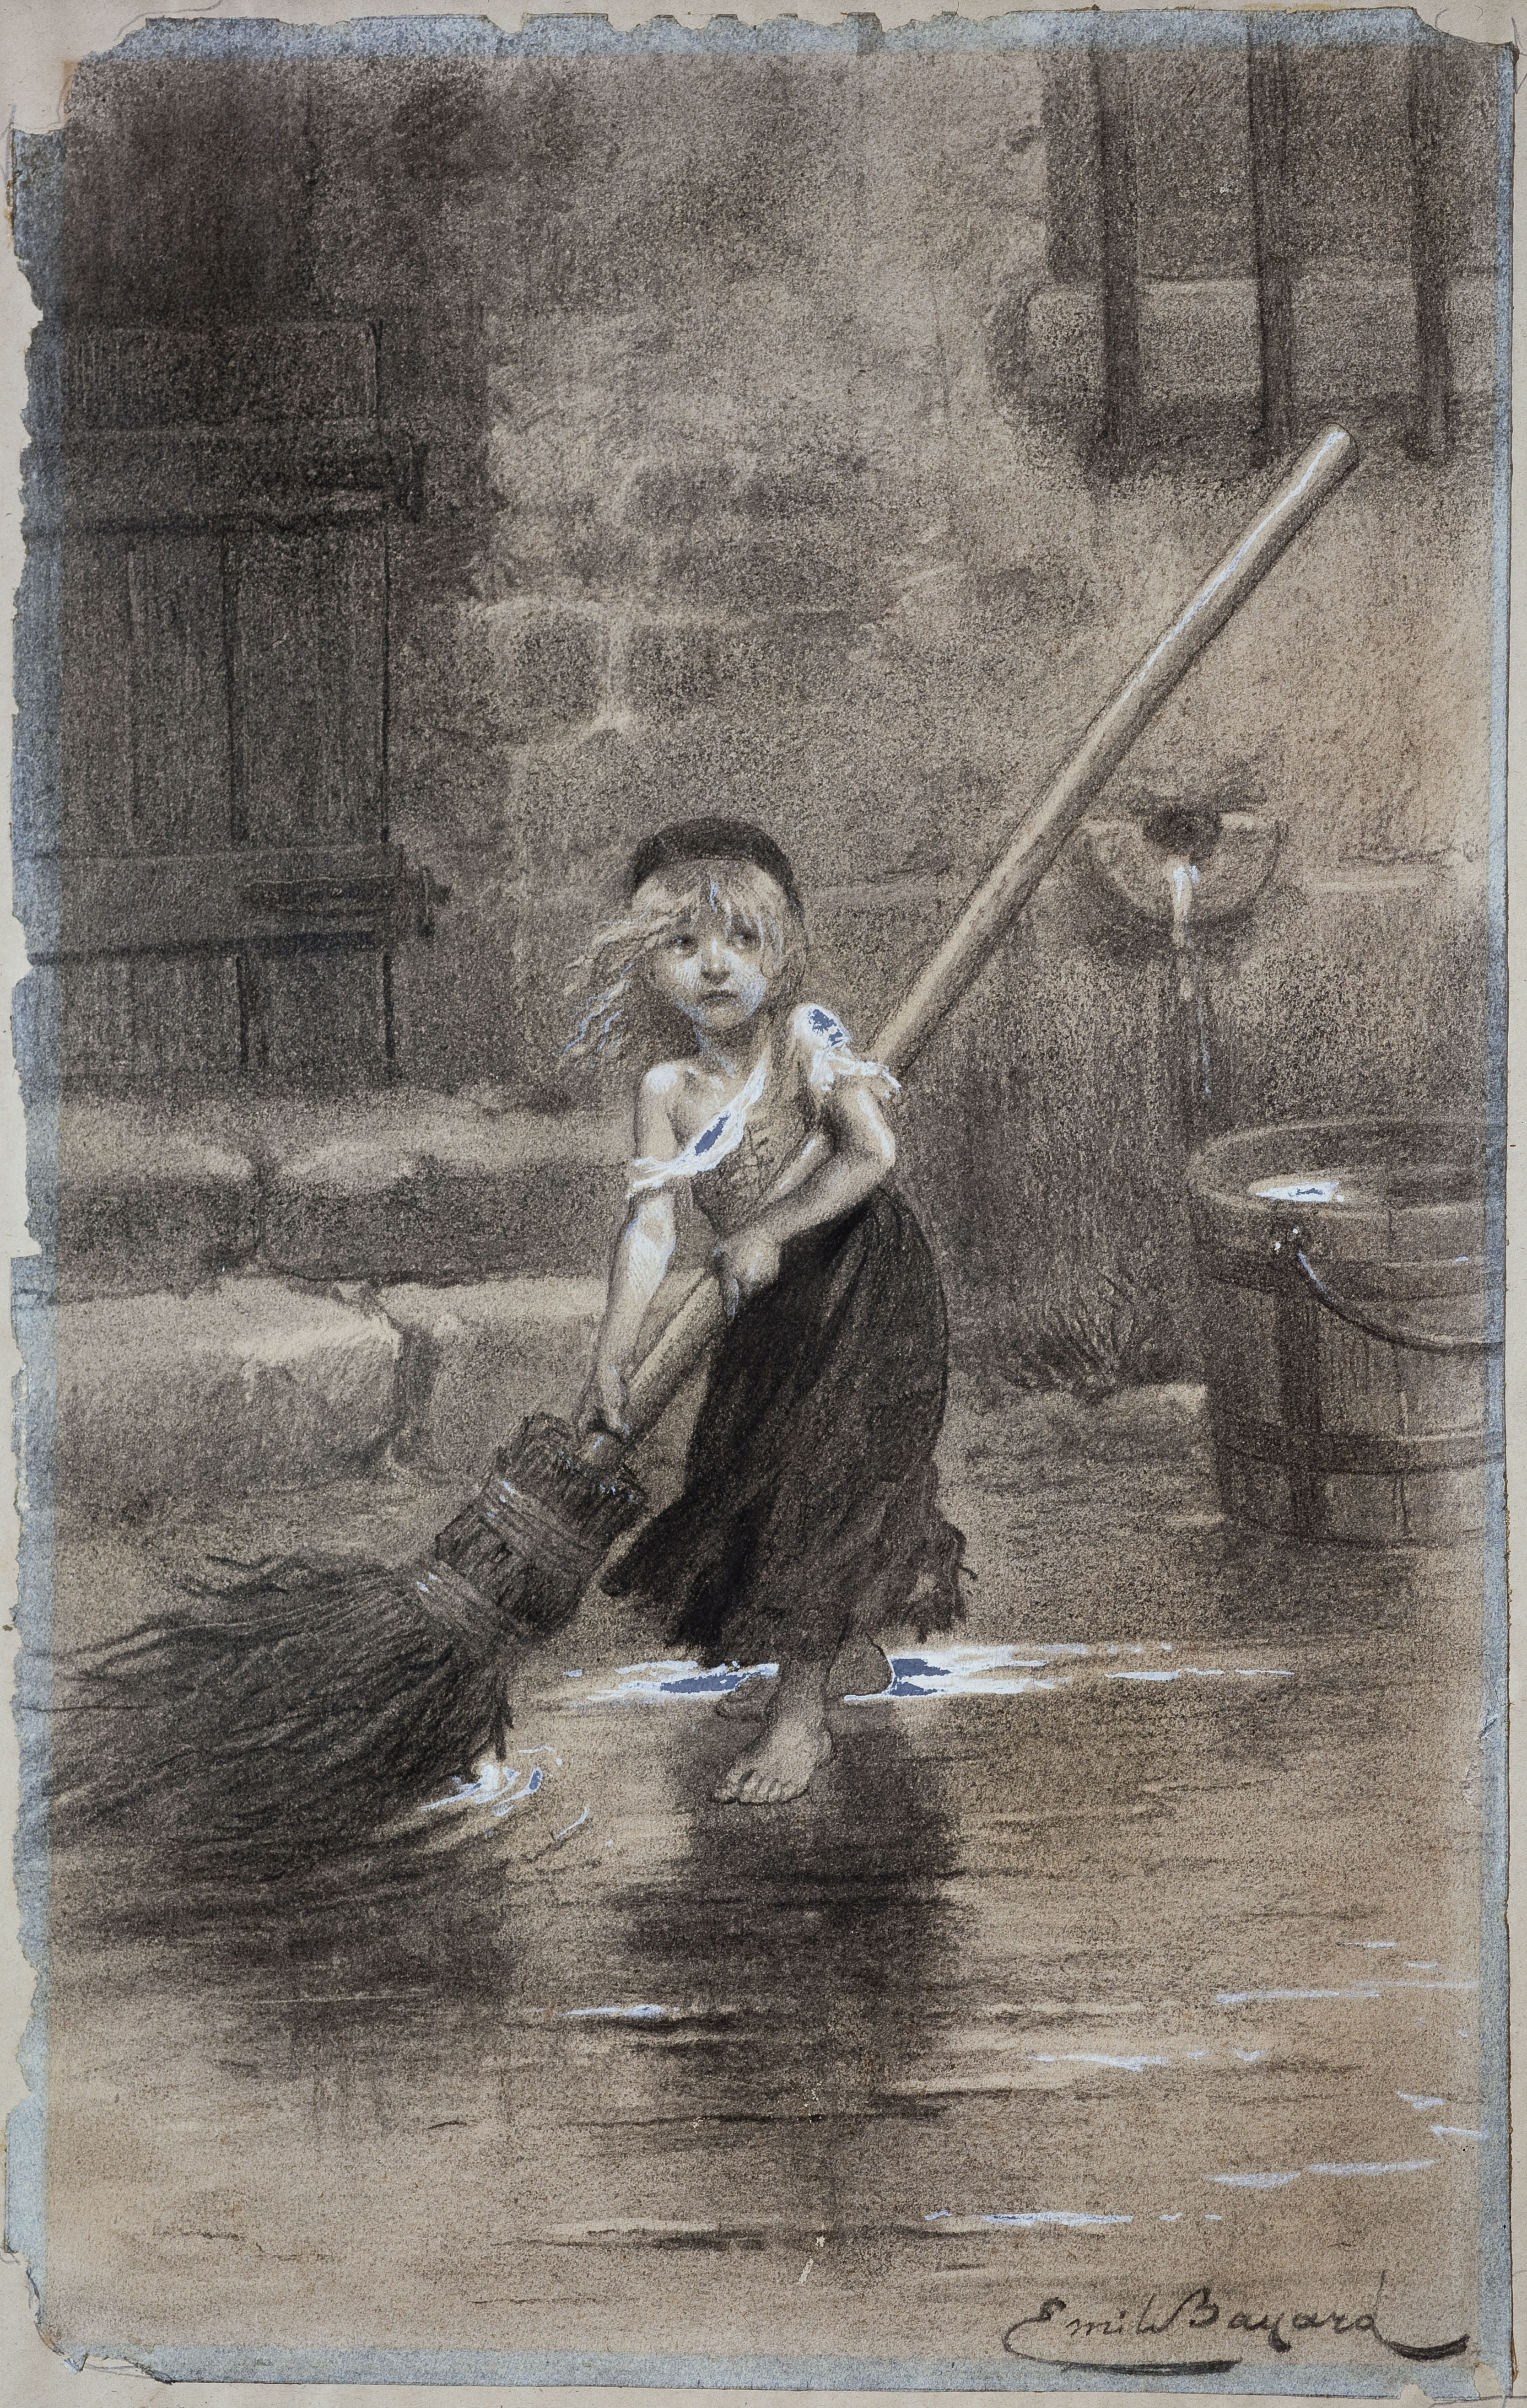 http://upload.wikimedia.org/wikipedia/commons/4/40/Cosette-sweeping-les-miserables-emile-bayard-1862.jpg